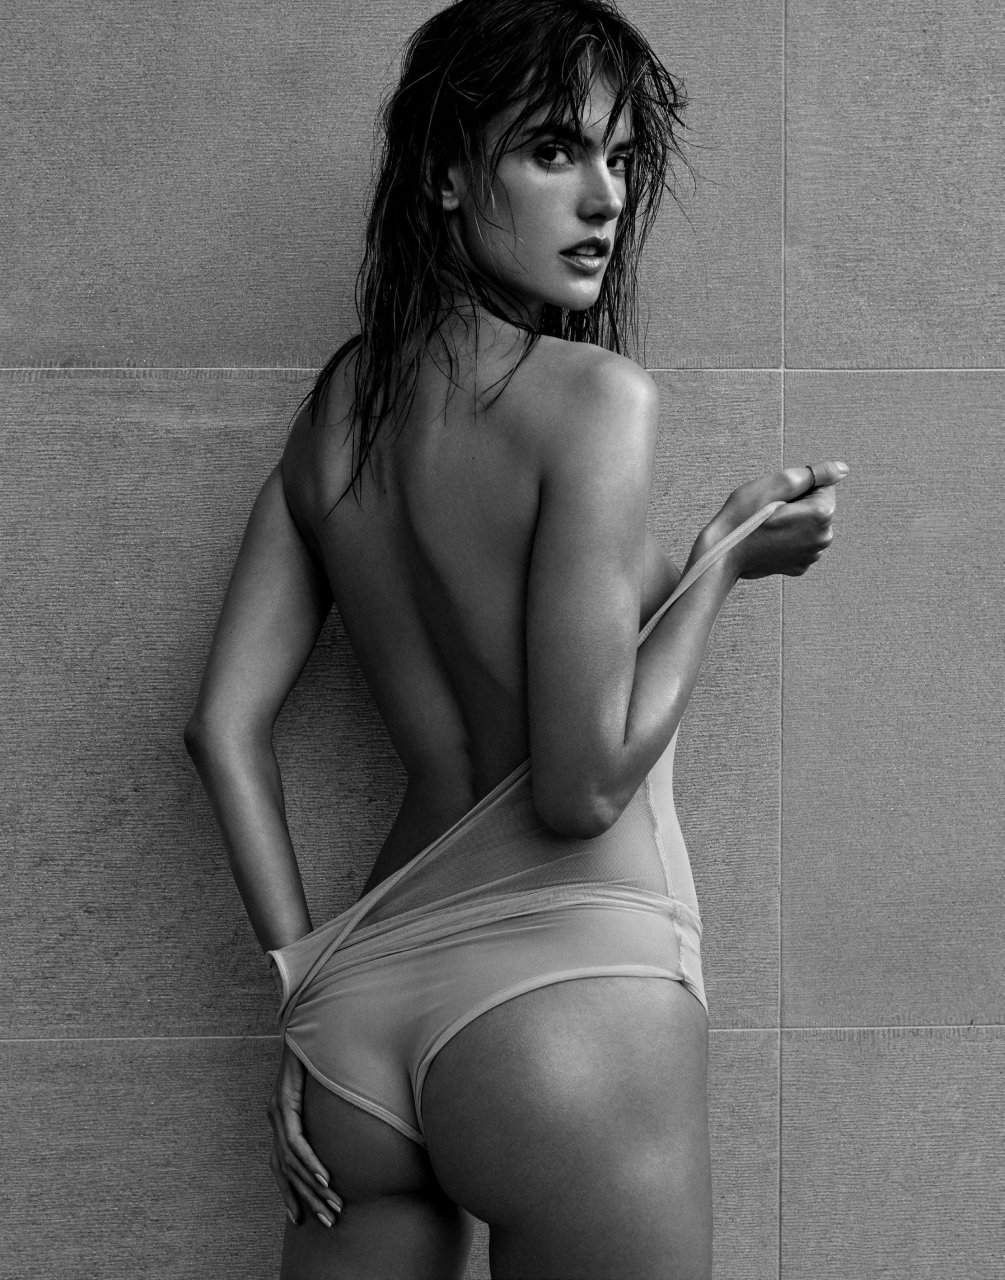 nude pictures of alessandra ambrosio pussy